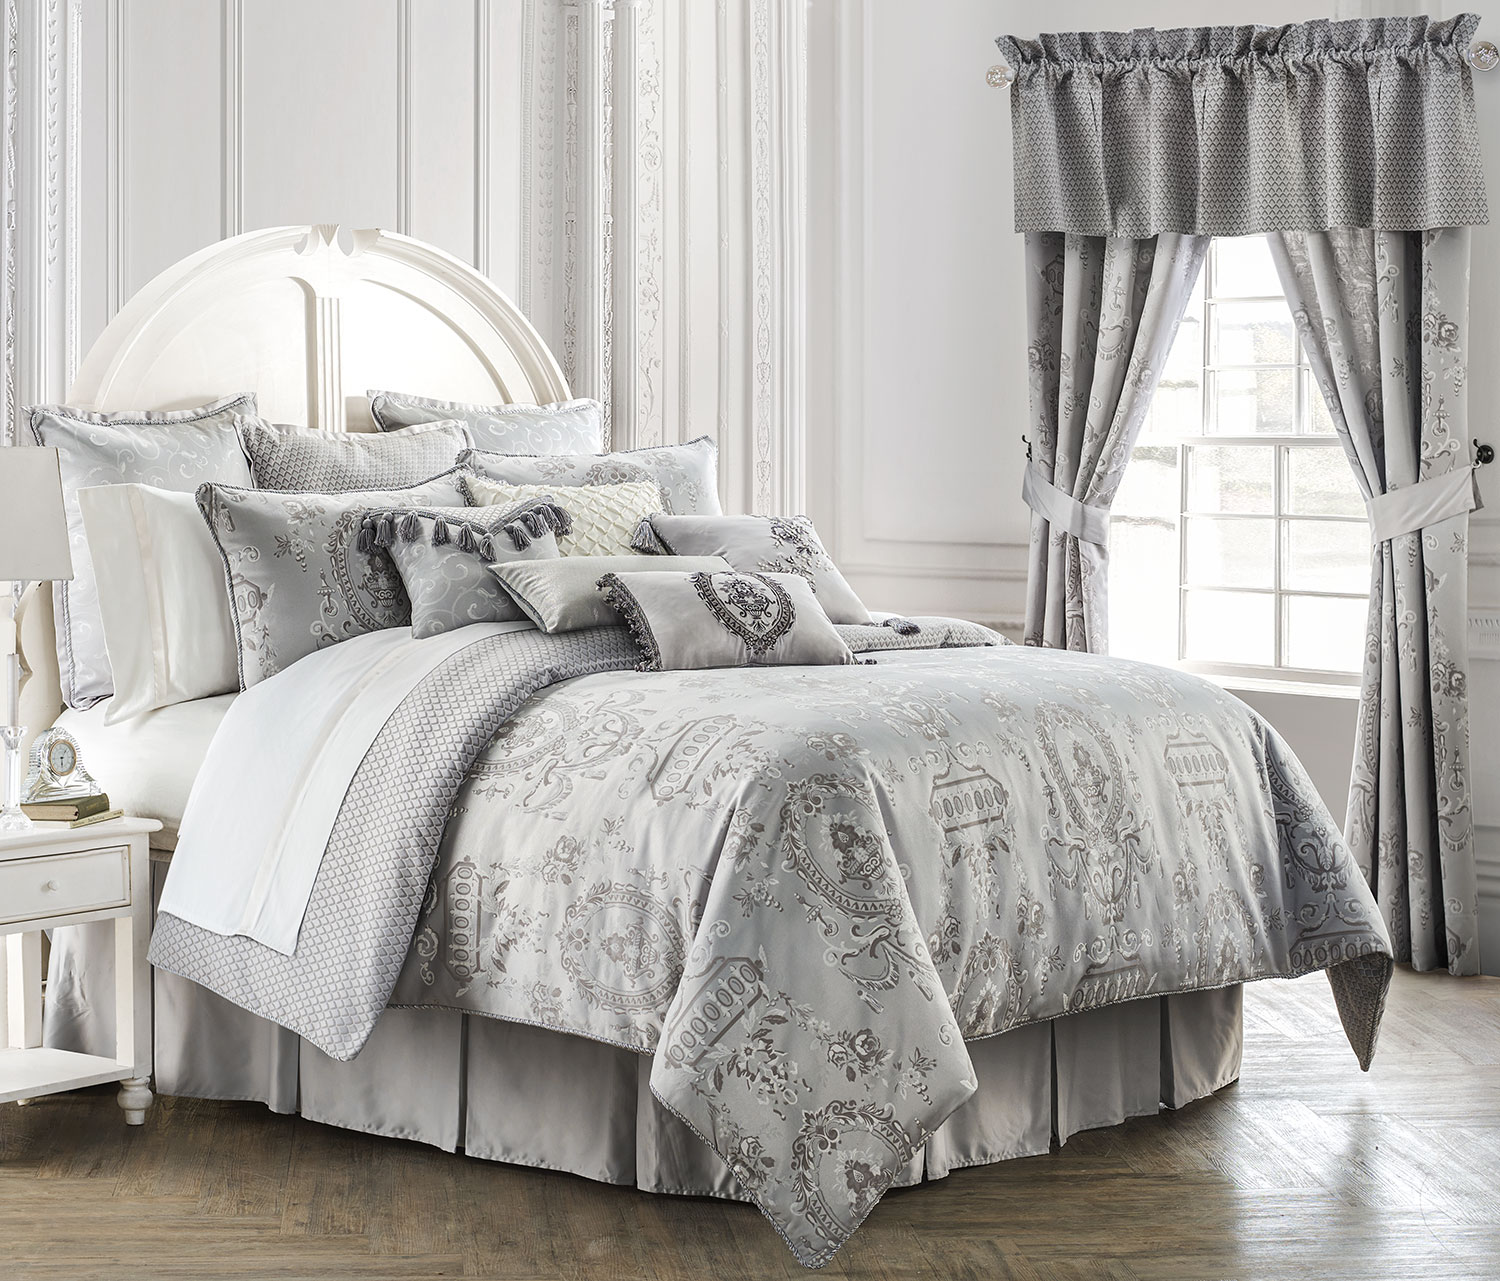 Marquis By Waterford Samantha Bedding Coordinates